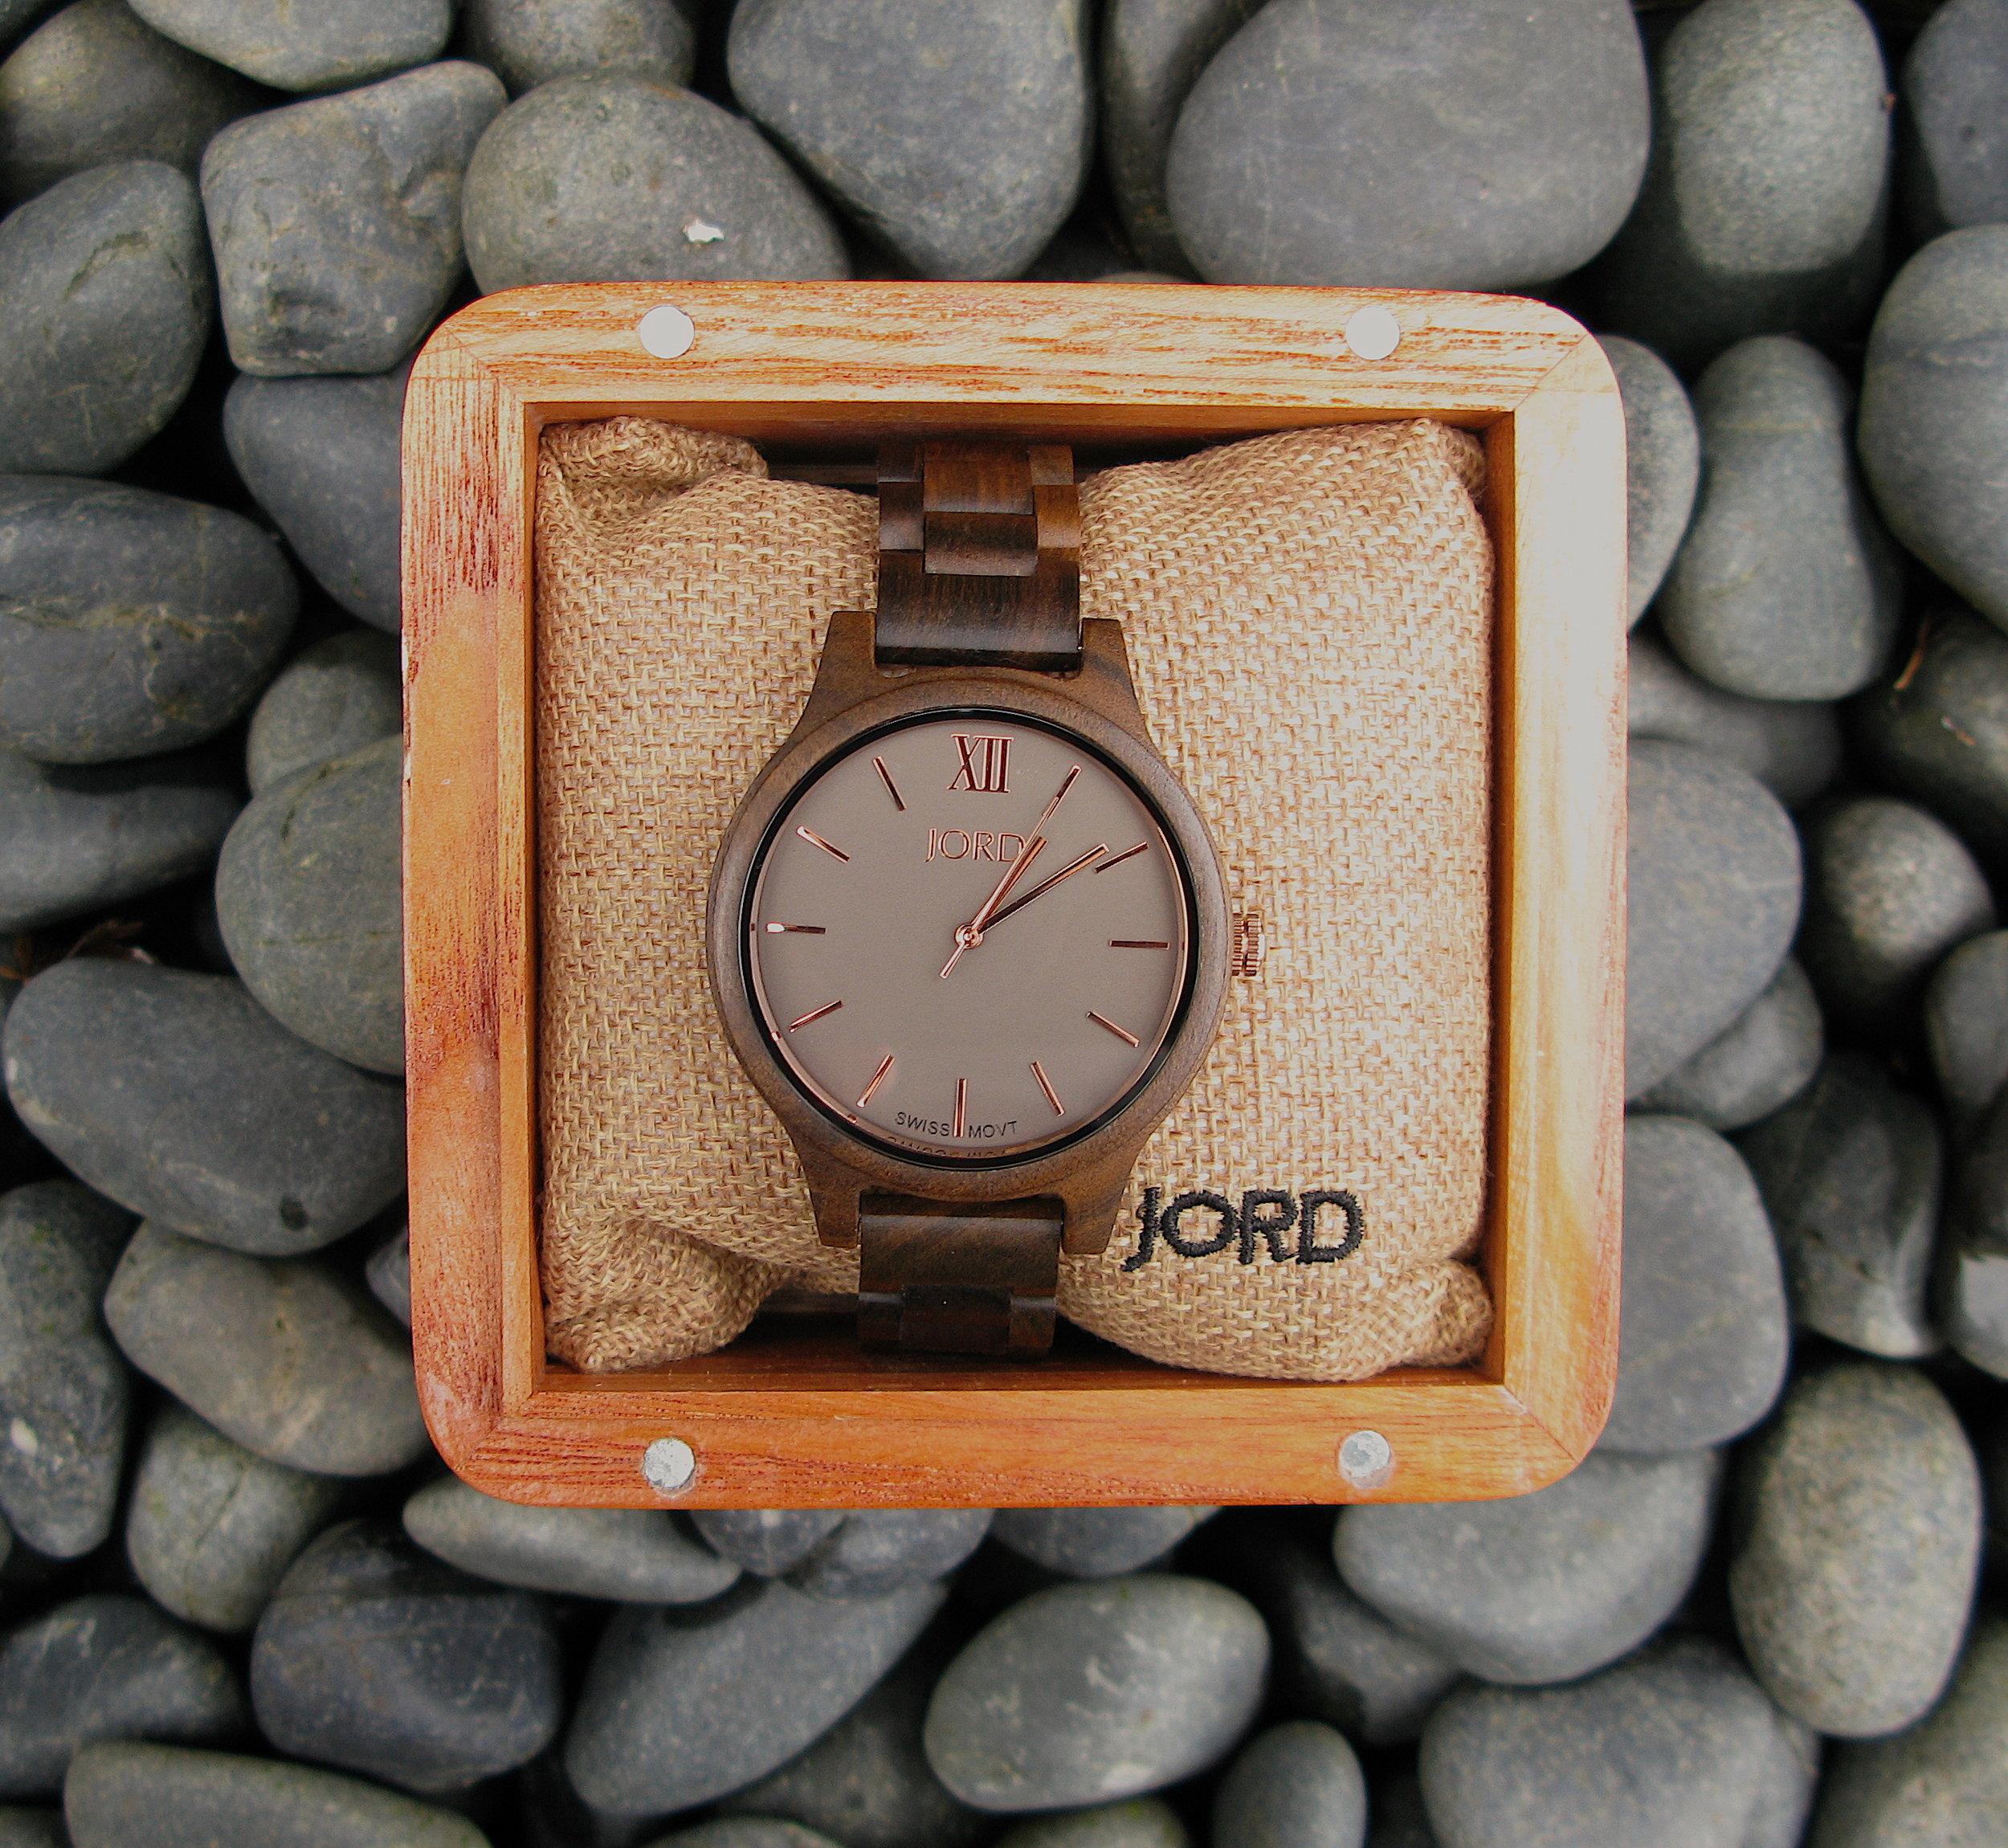 Wood men's watch